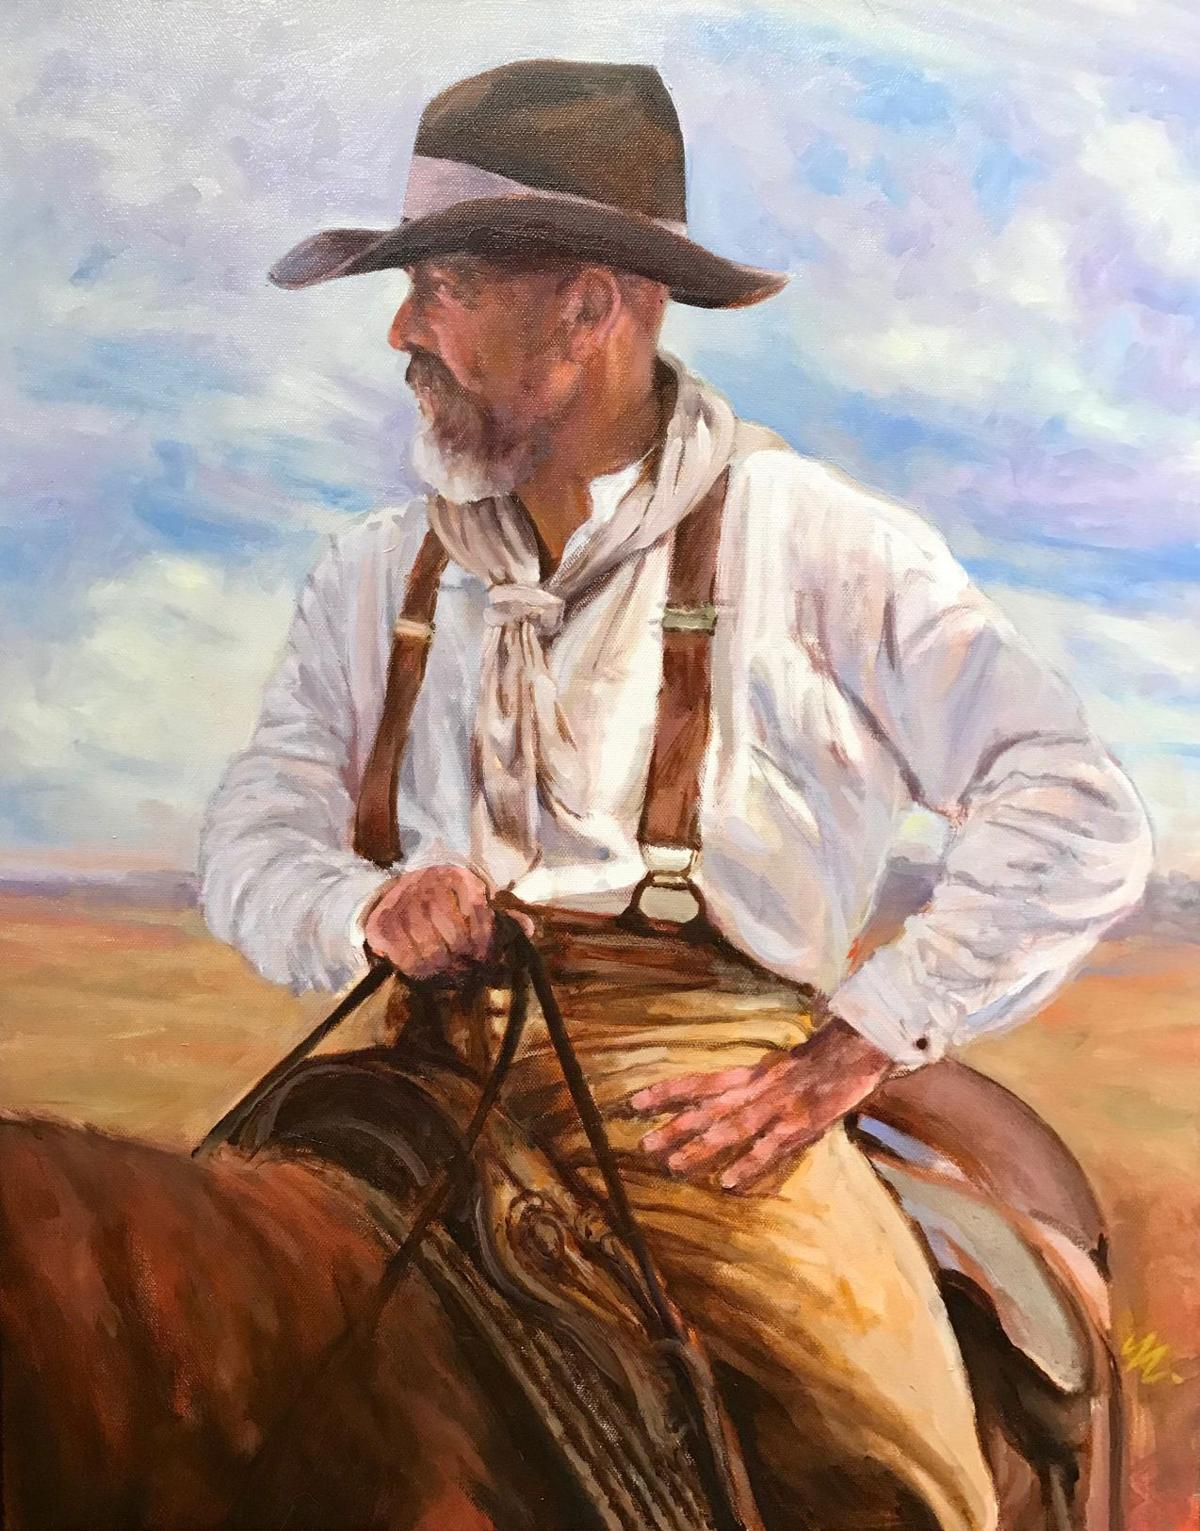 The Wrangler by Bill  Mapes